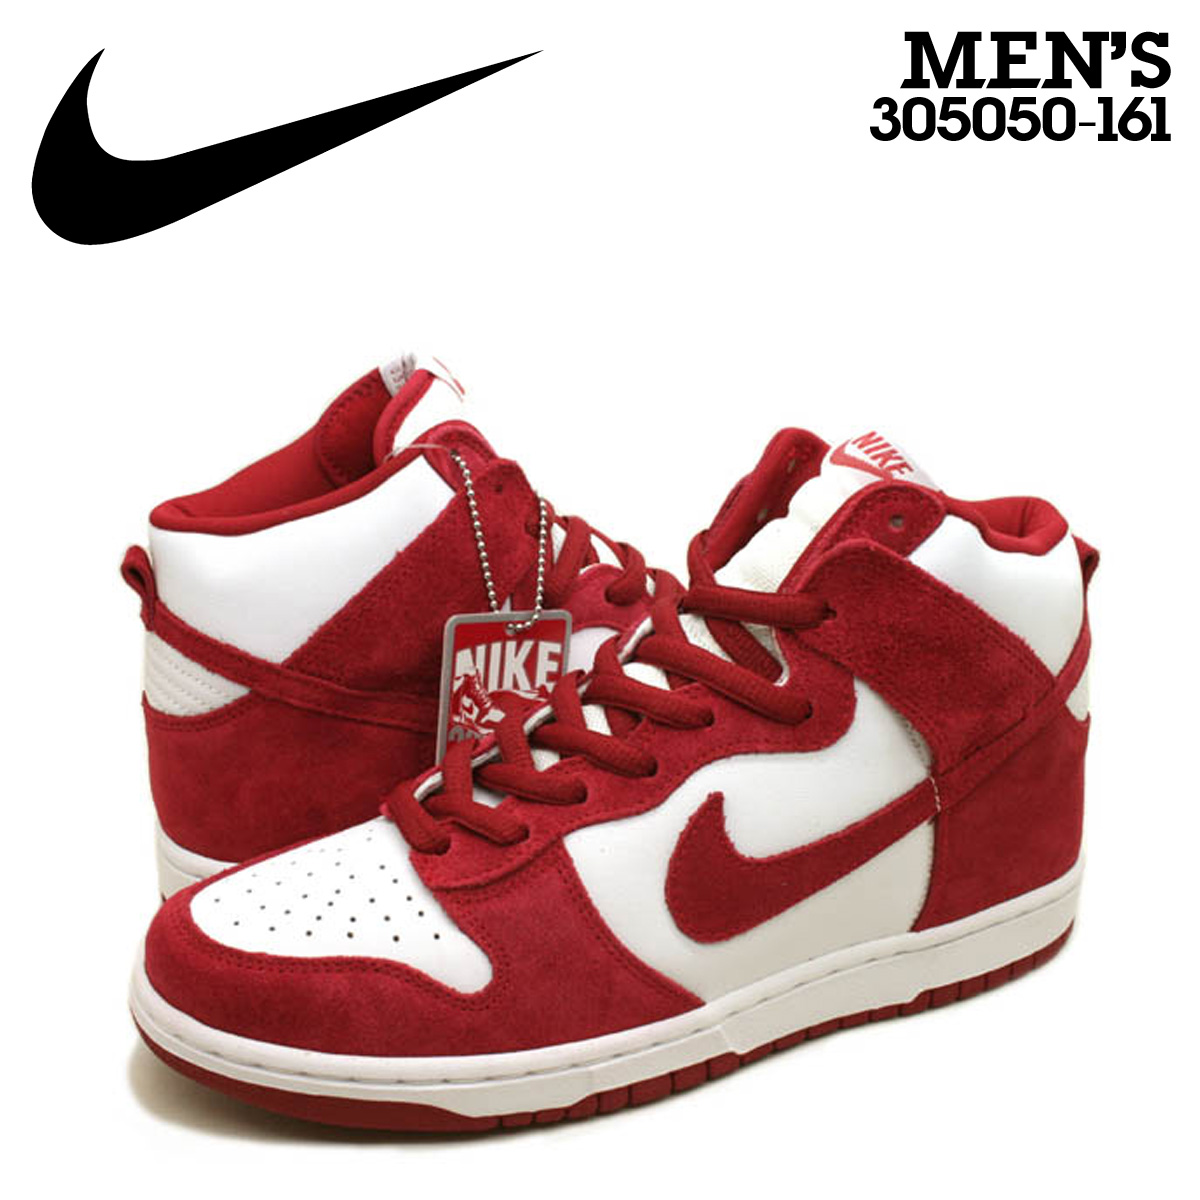 super popular 76c35 c2b21 305,050-161 red white white men of the 20th anniversary of NIKE Nike dunk  sneakers DUNK HIGH PRO SB TRUE TO YOUR SCHOOL dunk high professional S B